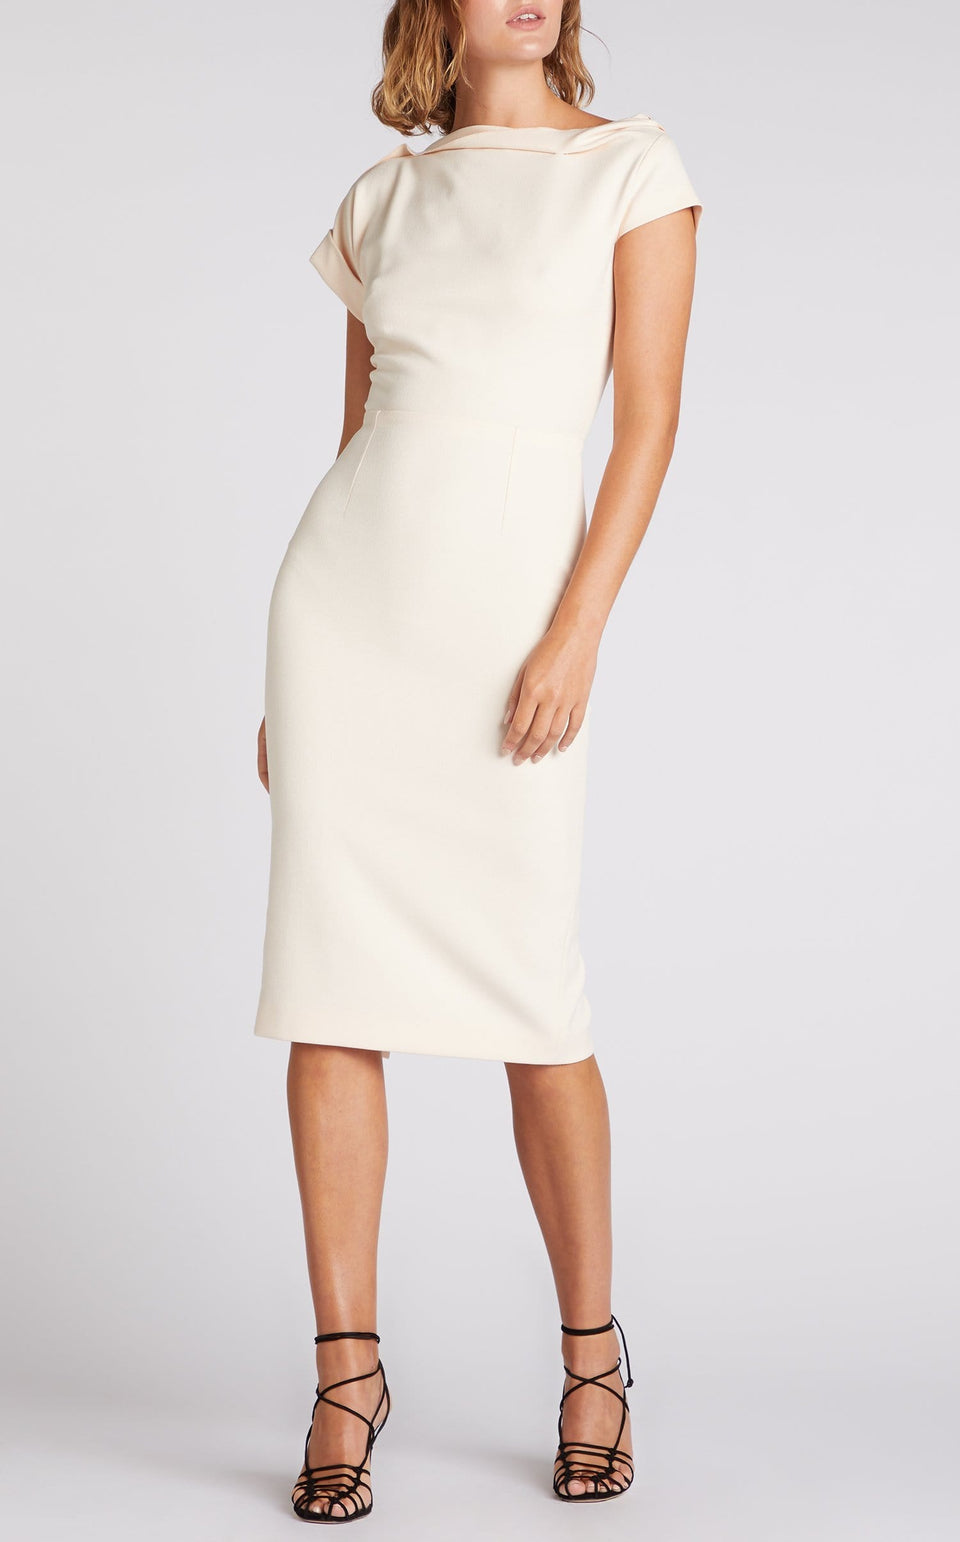 Brenin Dress